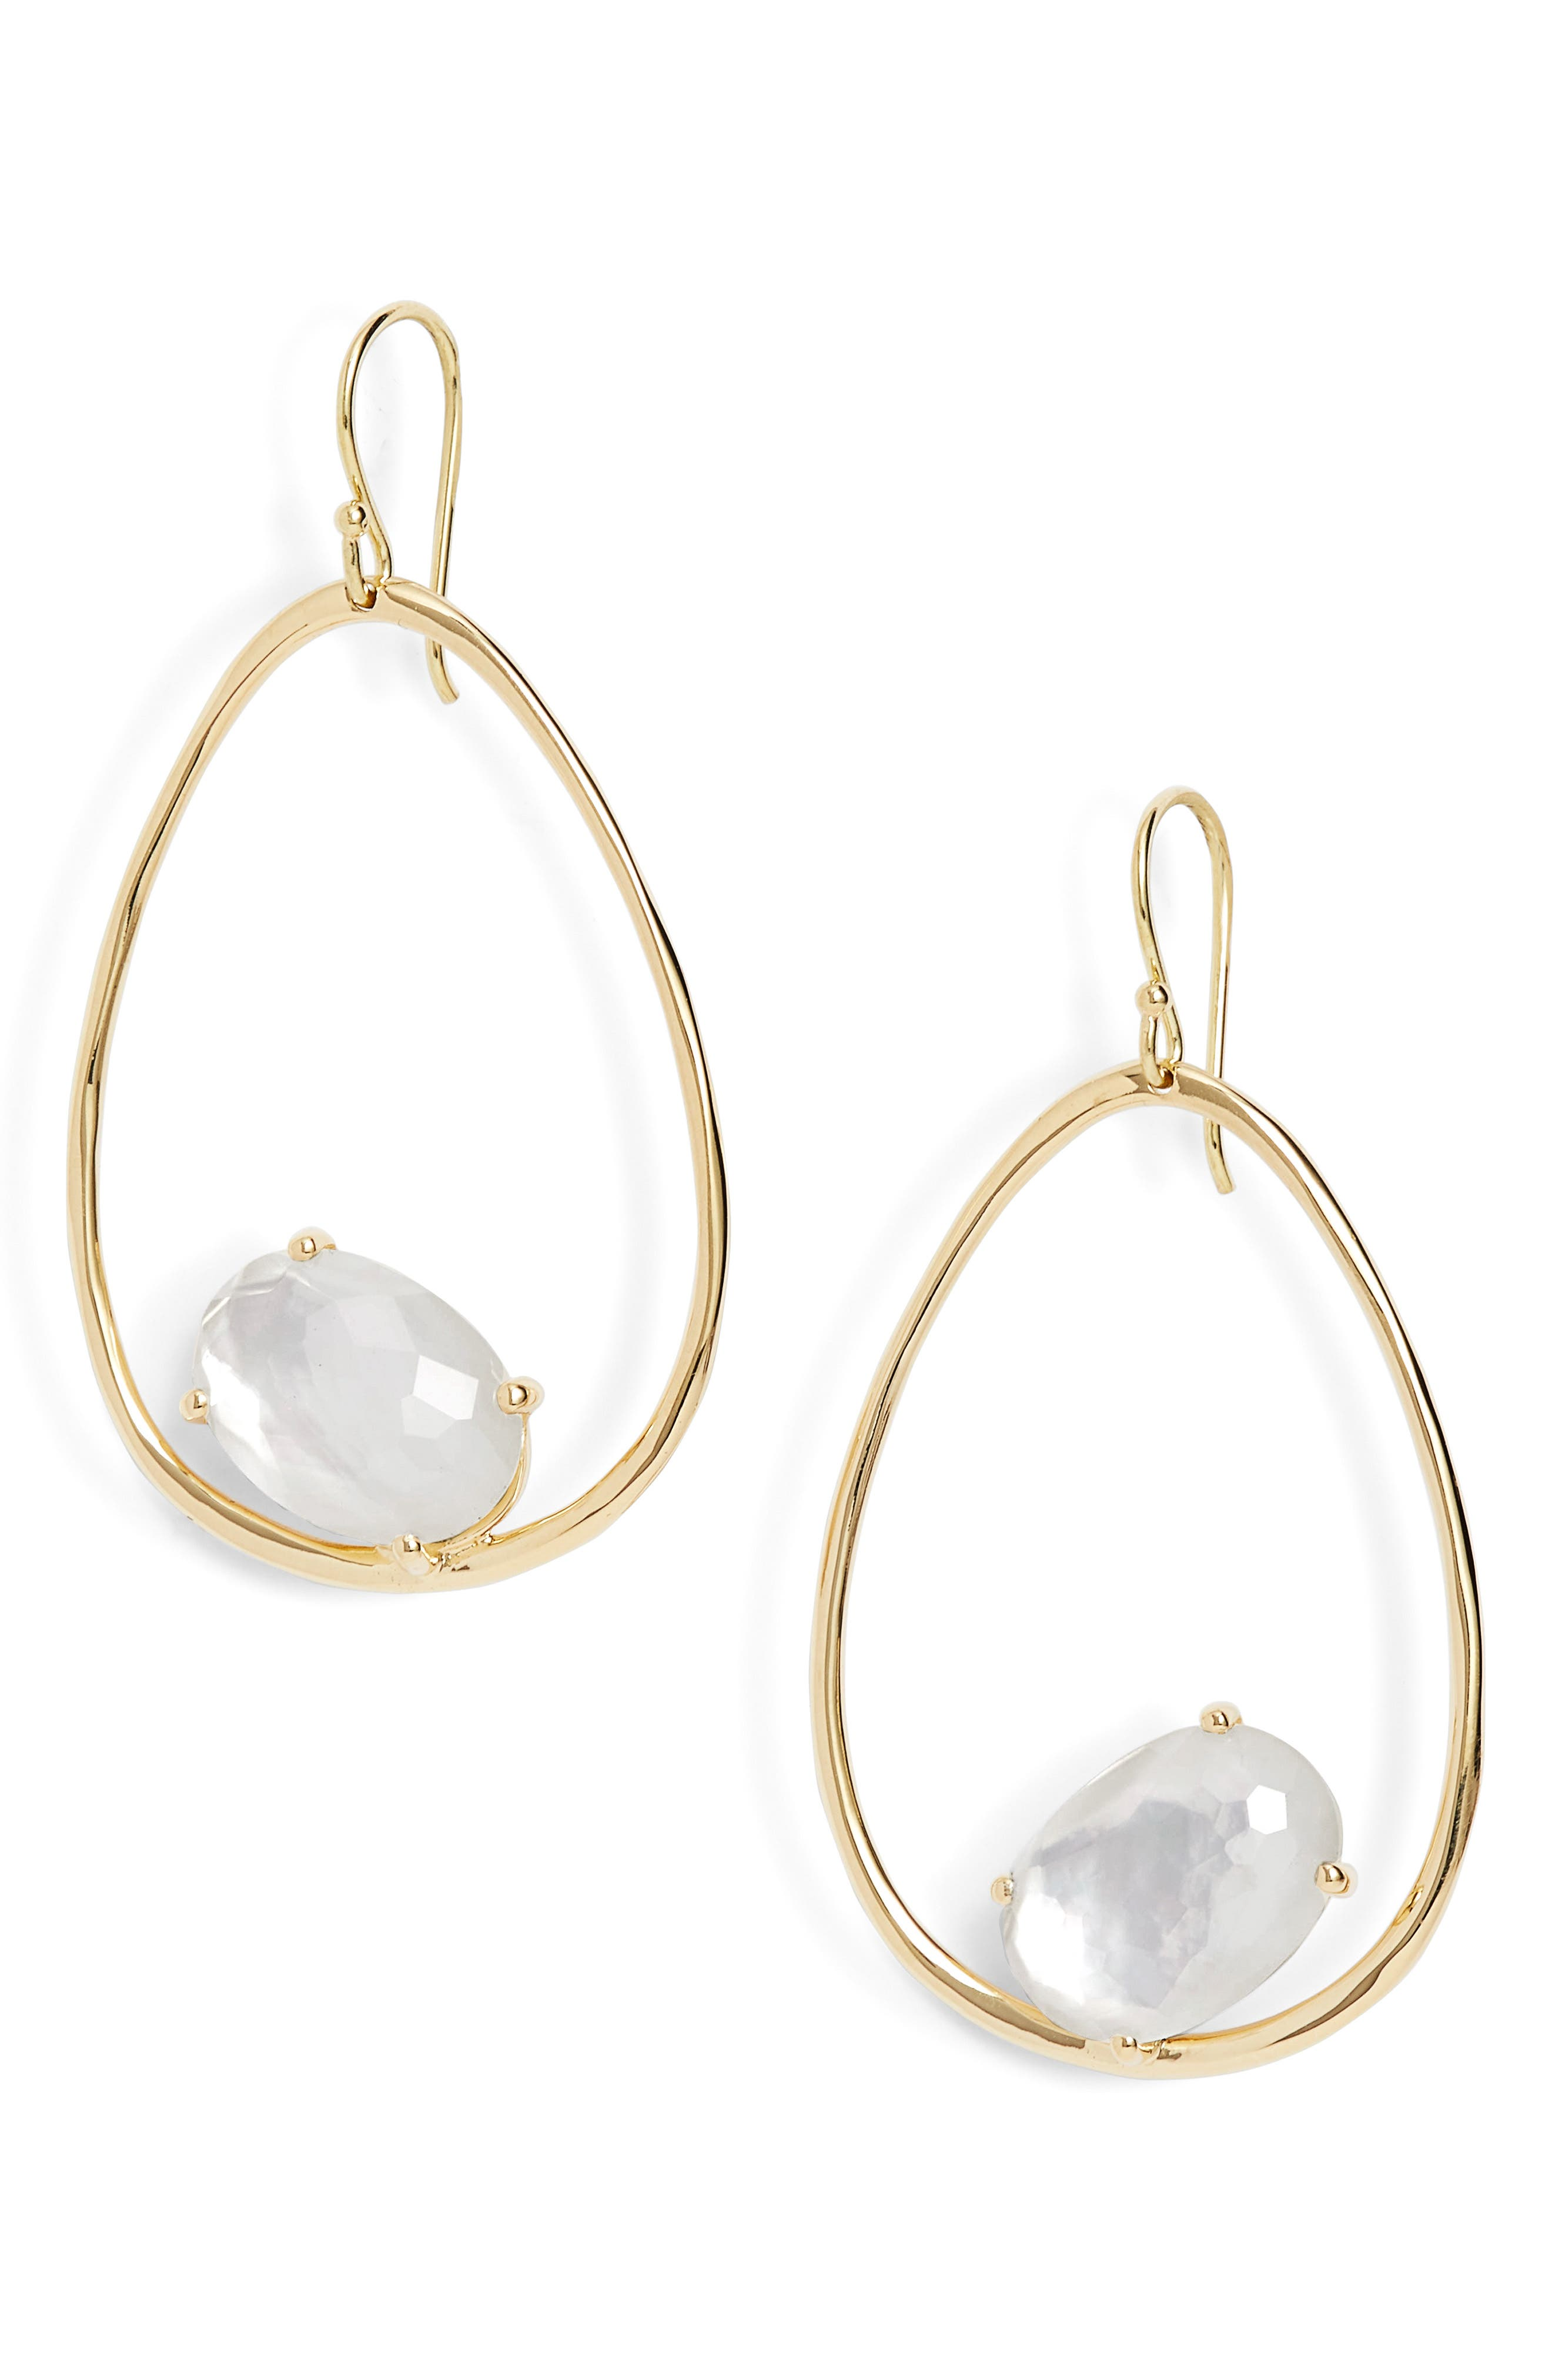 Rock Candy 18K Gold Large Drop Earrings,                         Main,                         color, 106